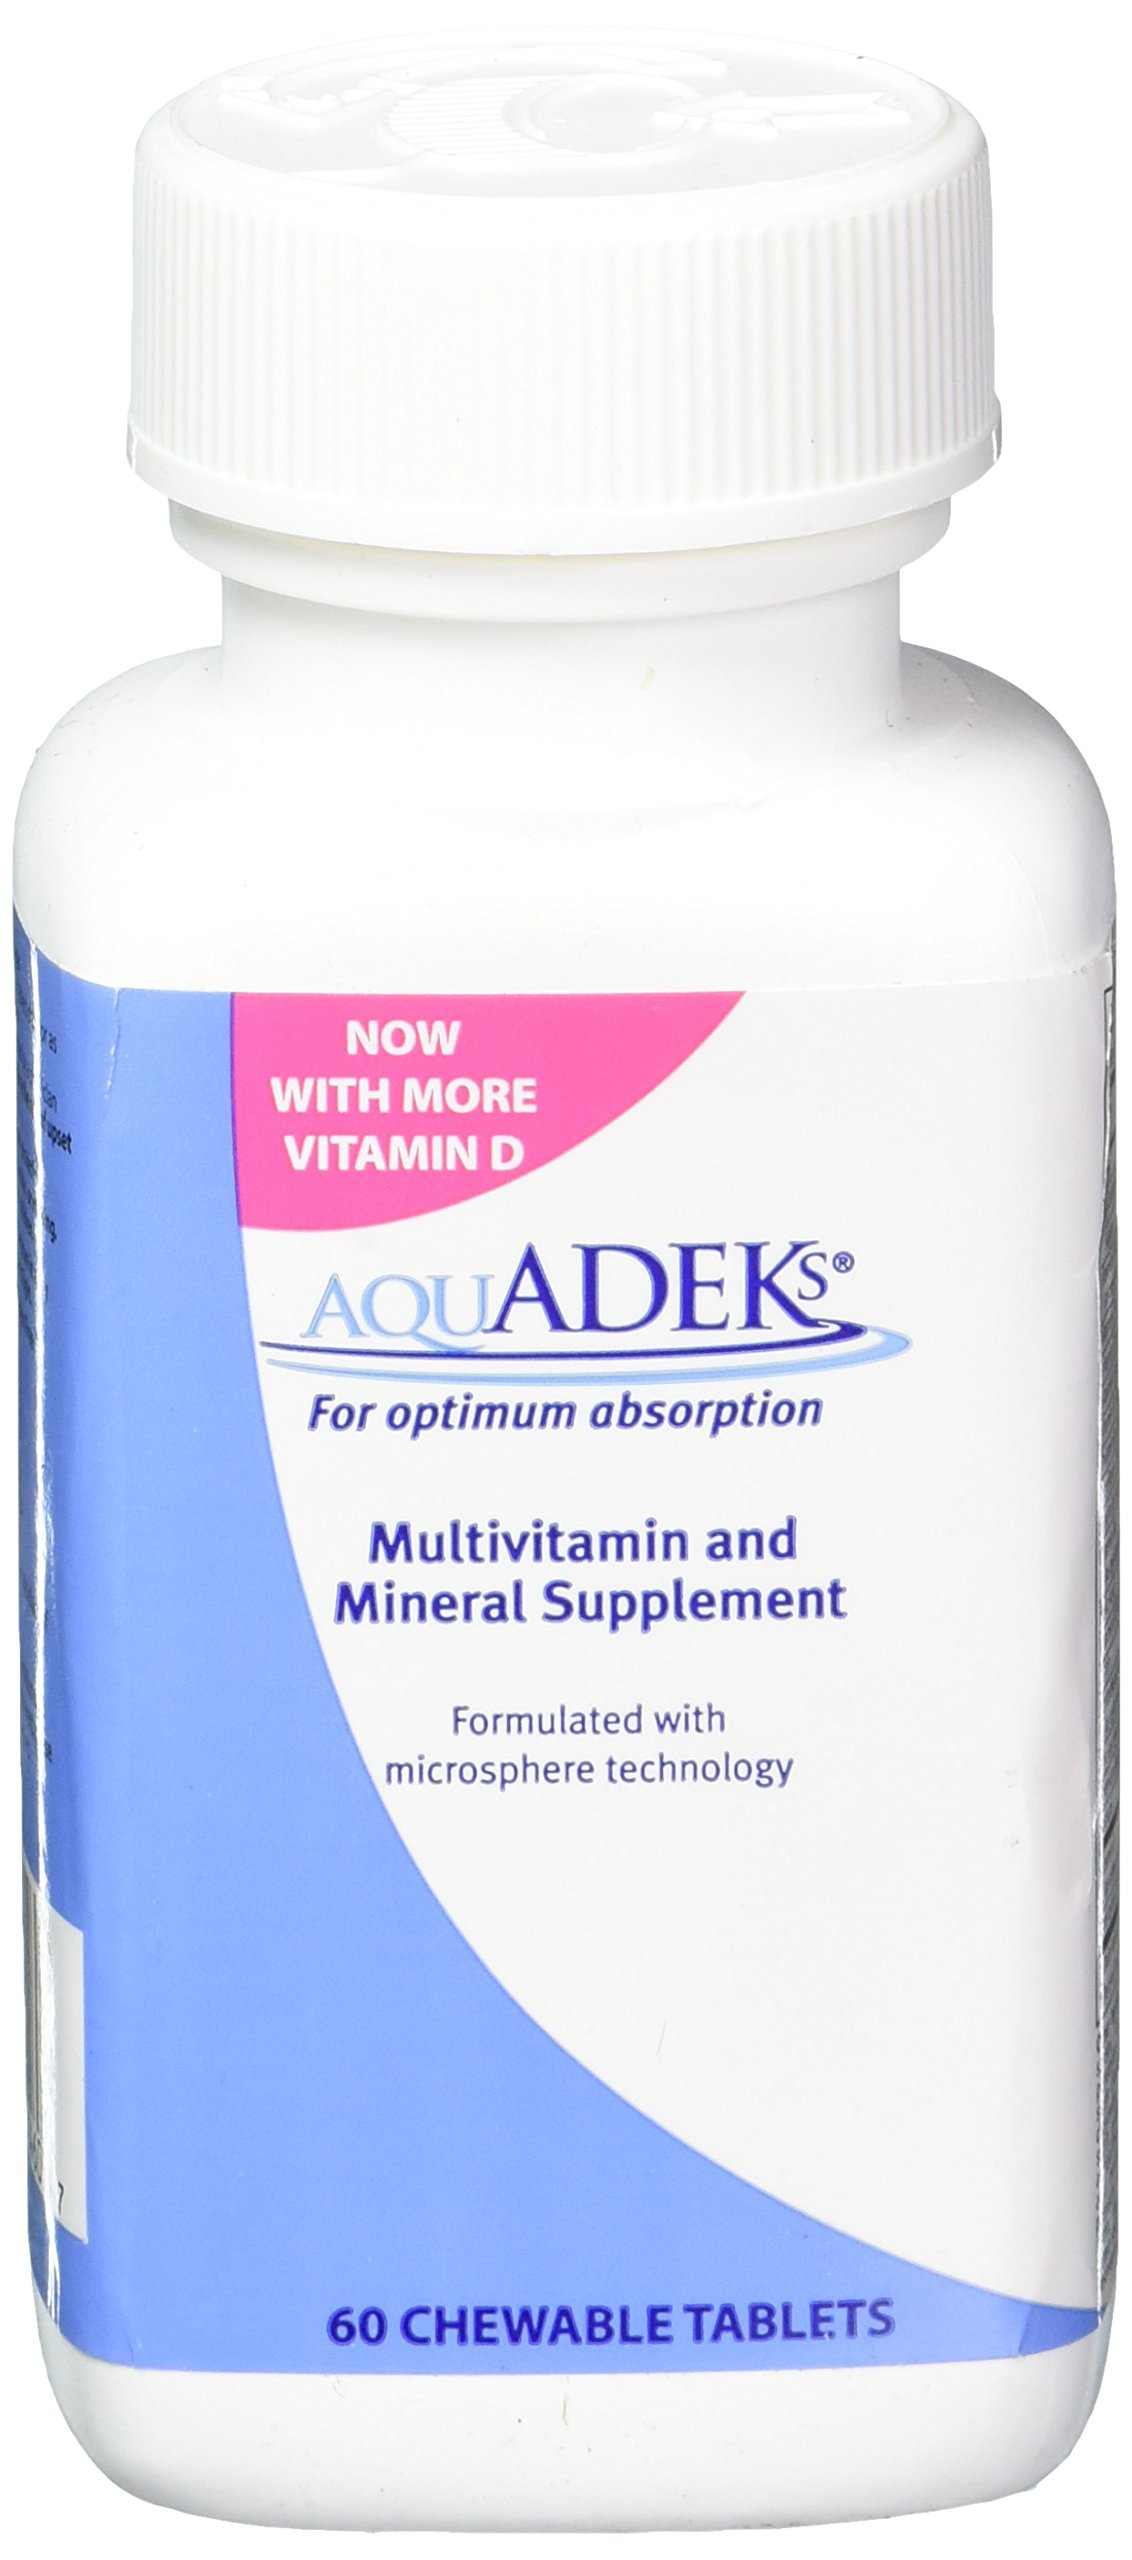 AQUADEKS Chewable Tablets Multi-Vitamins & Mineral Supplement, 60 Count